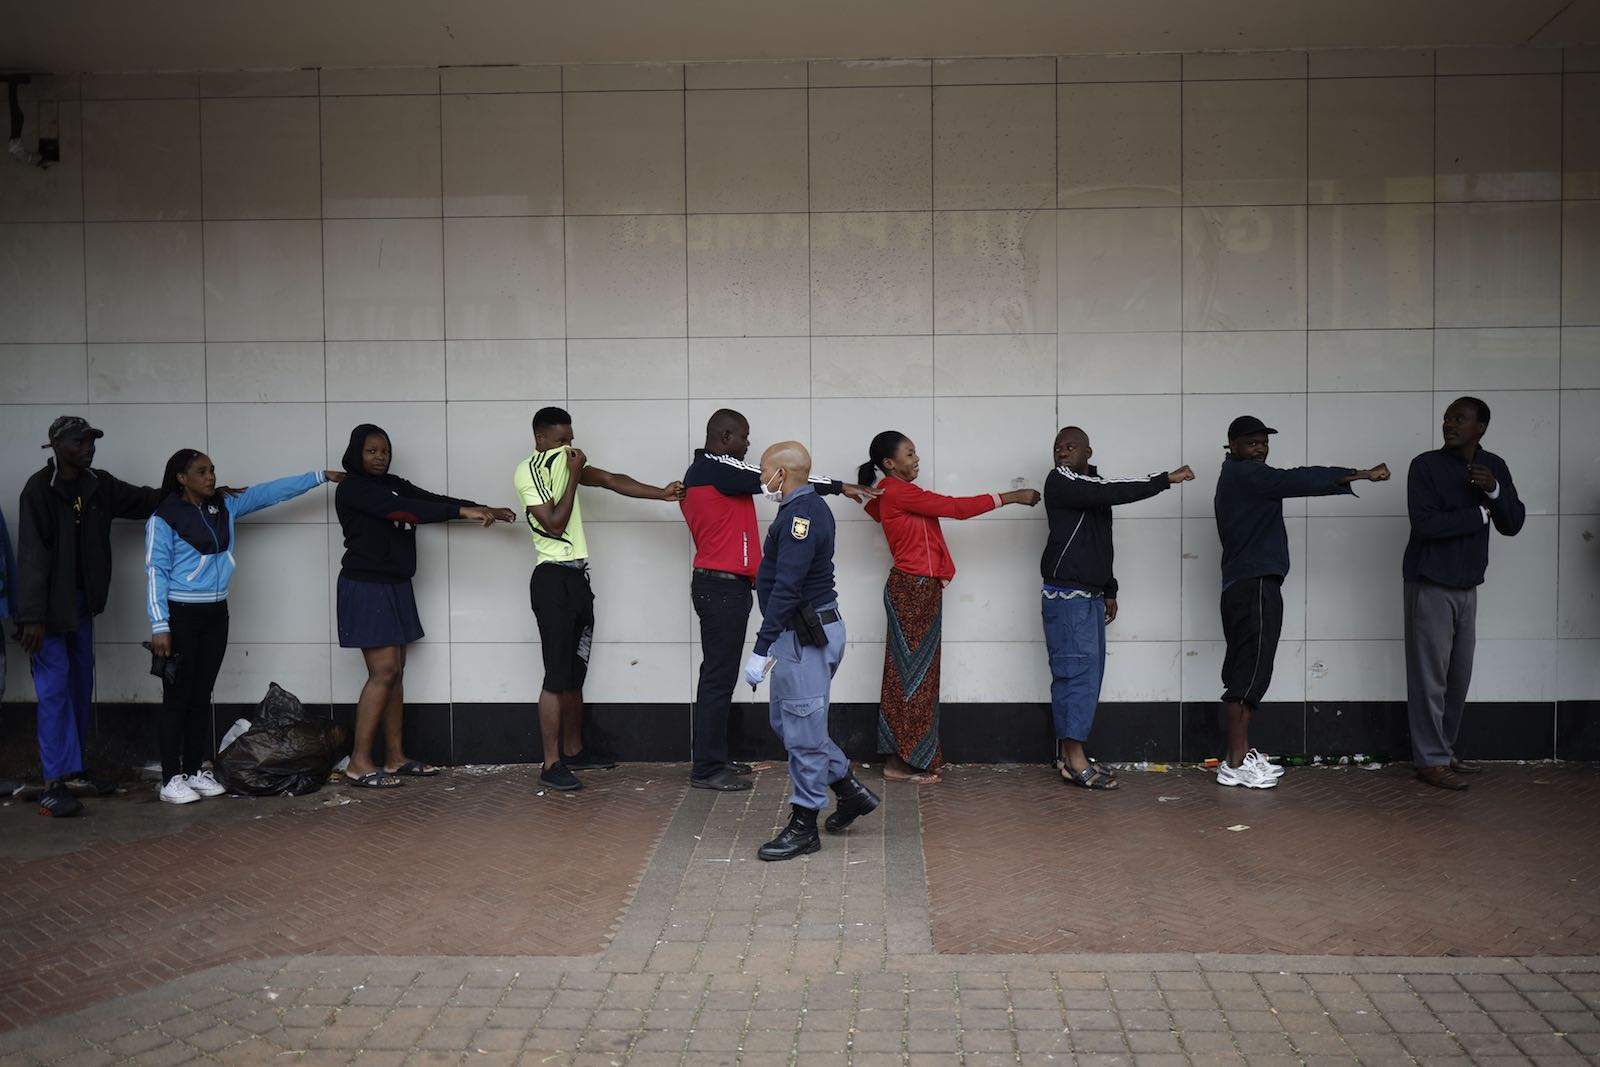 Social distancing, South Africa (Marco Longari/AFP via Getty Images)